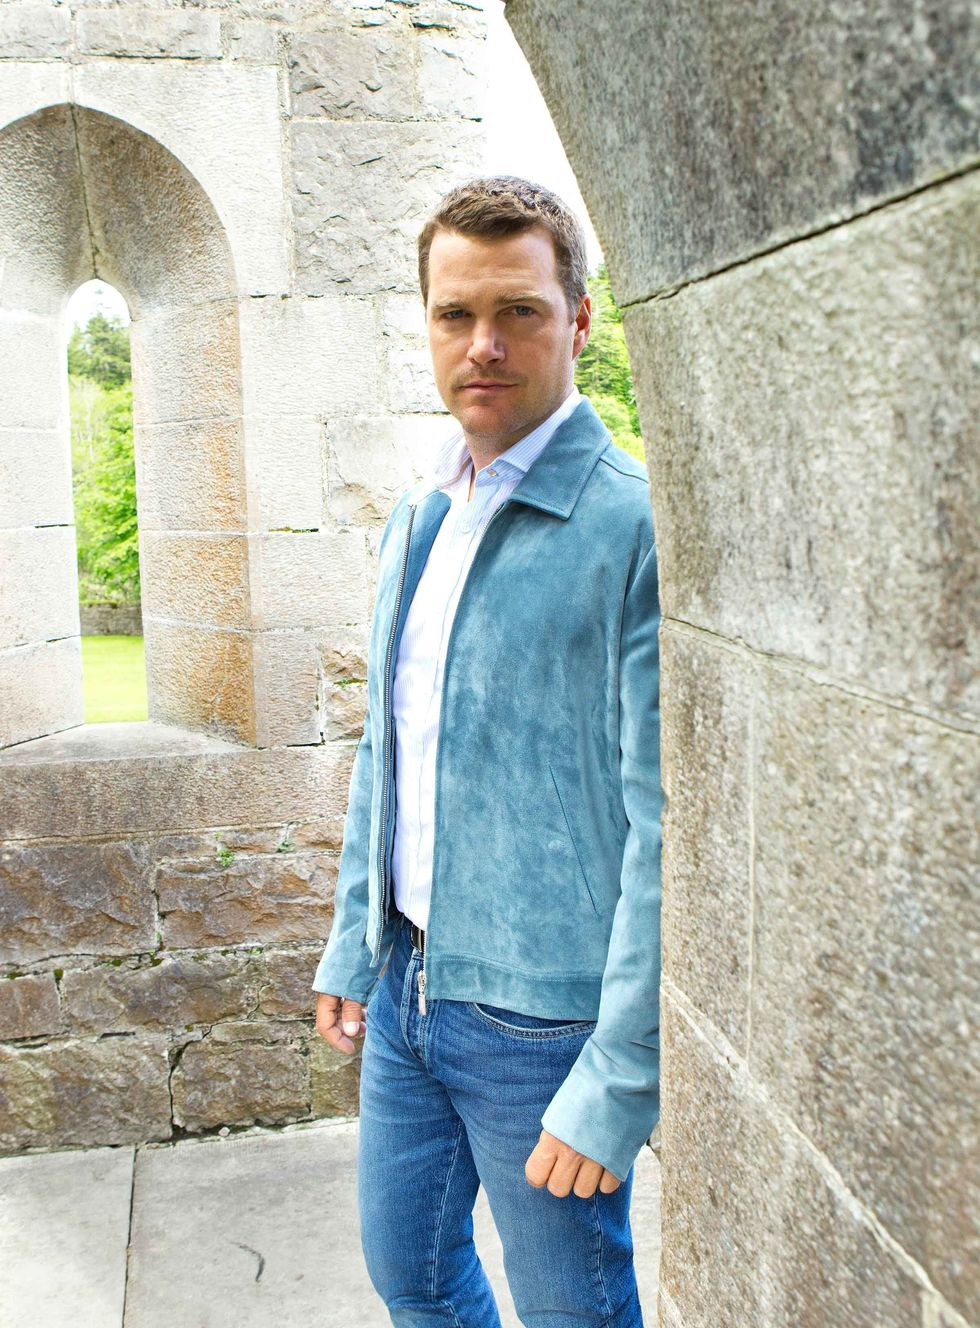 Chris O'Donnell in a blue suede jacket and blue jeans.